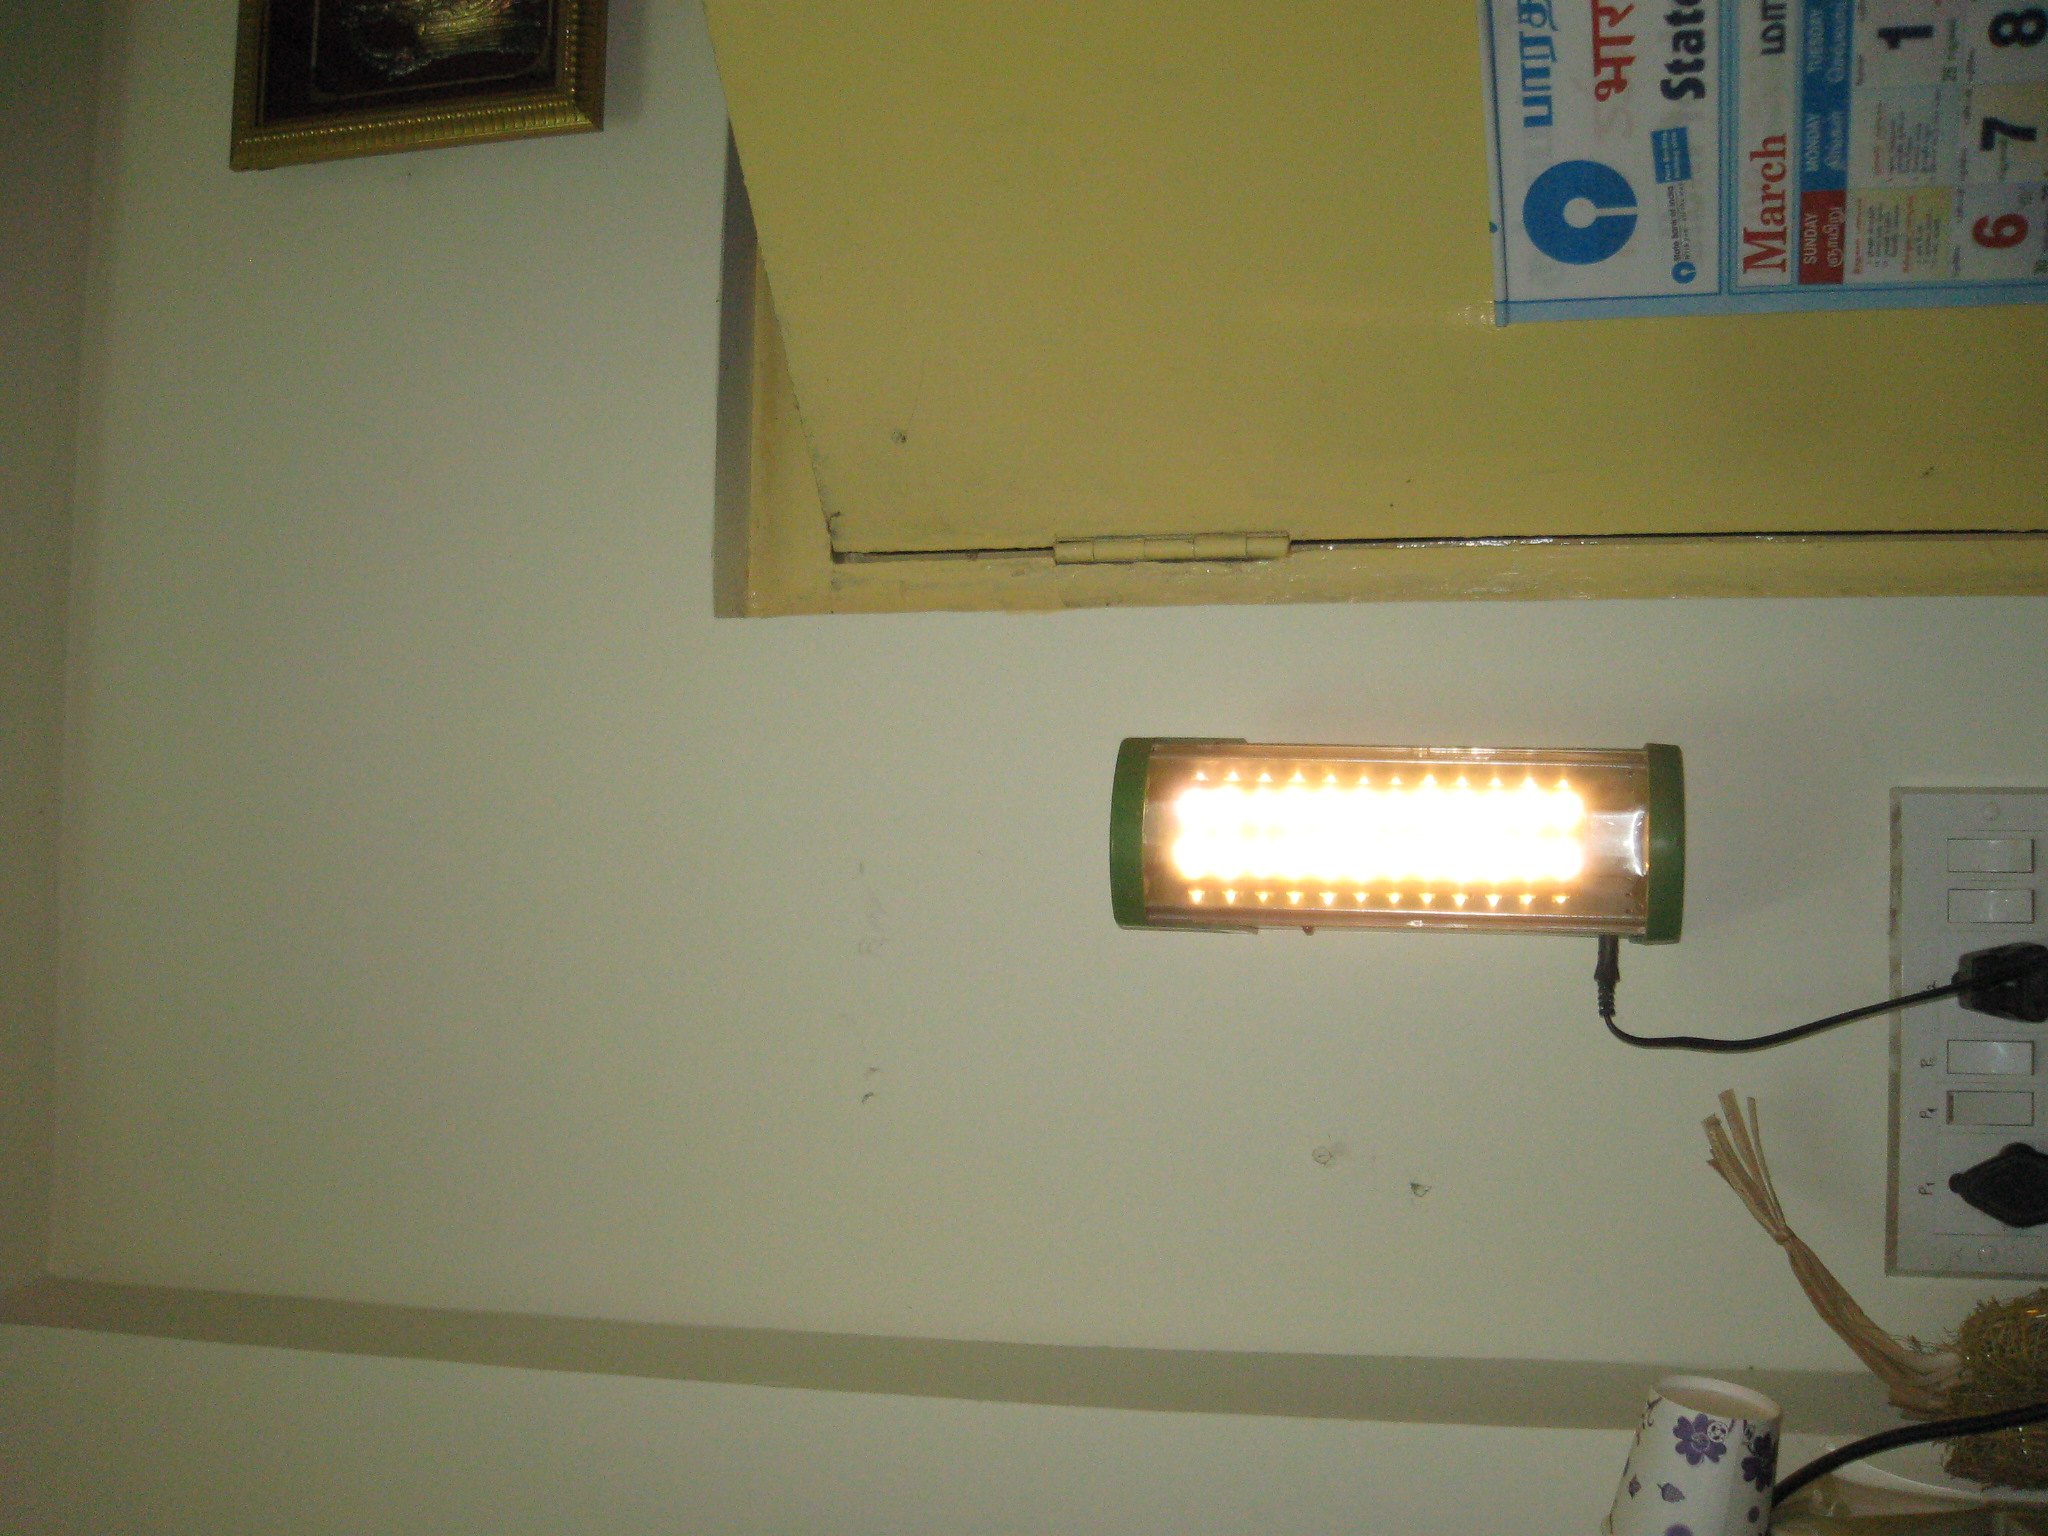 Automatic Led Emergency Light Circuit Power Of With A Wall Schematic To Electrical Wiring